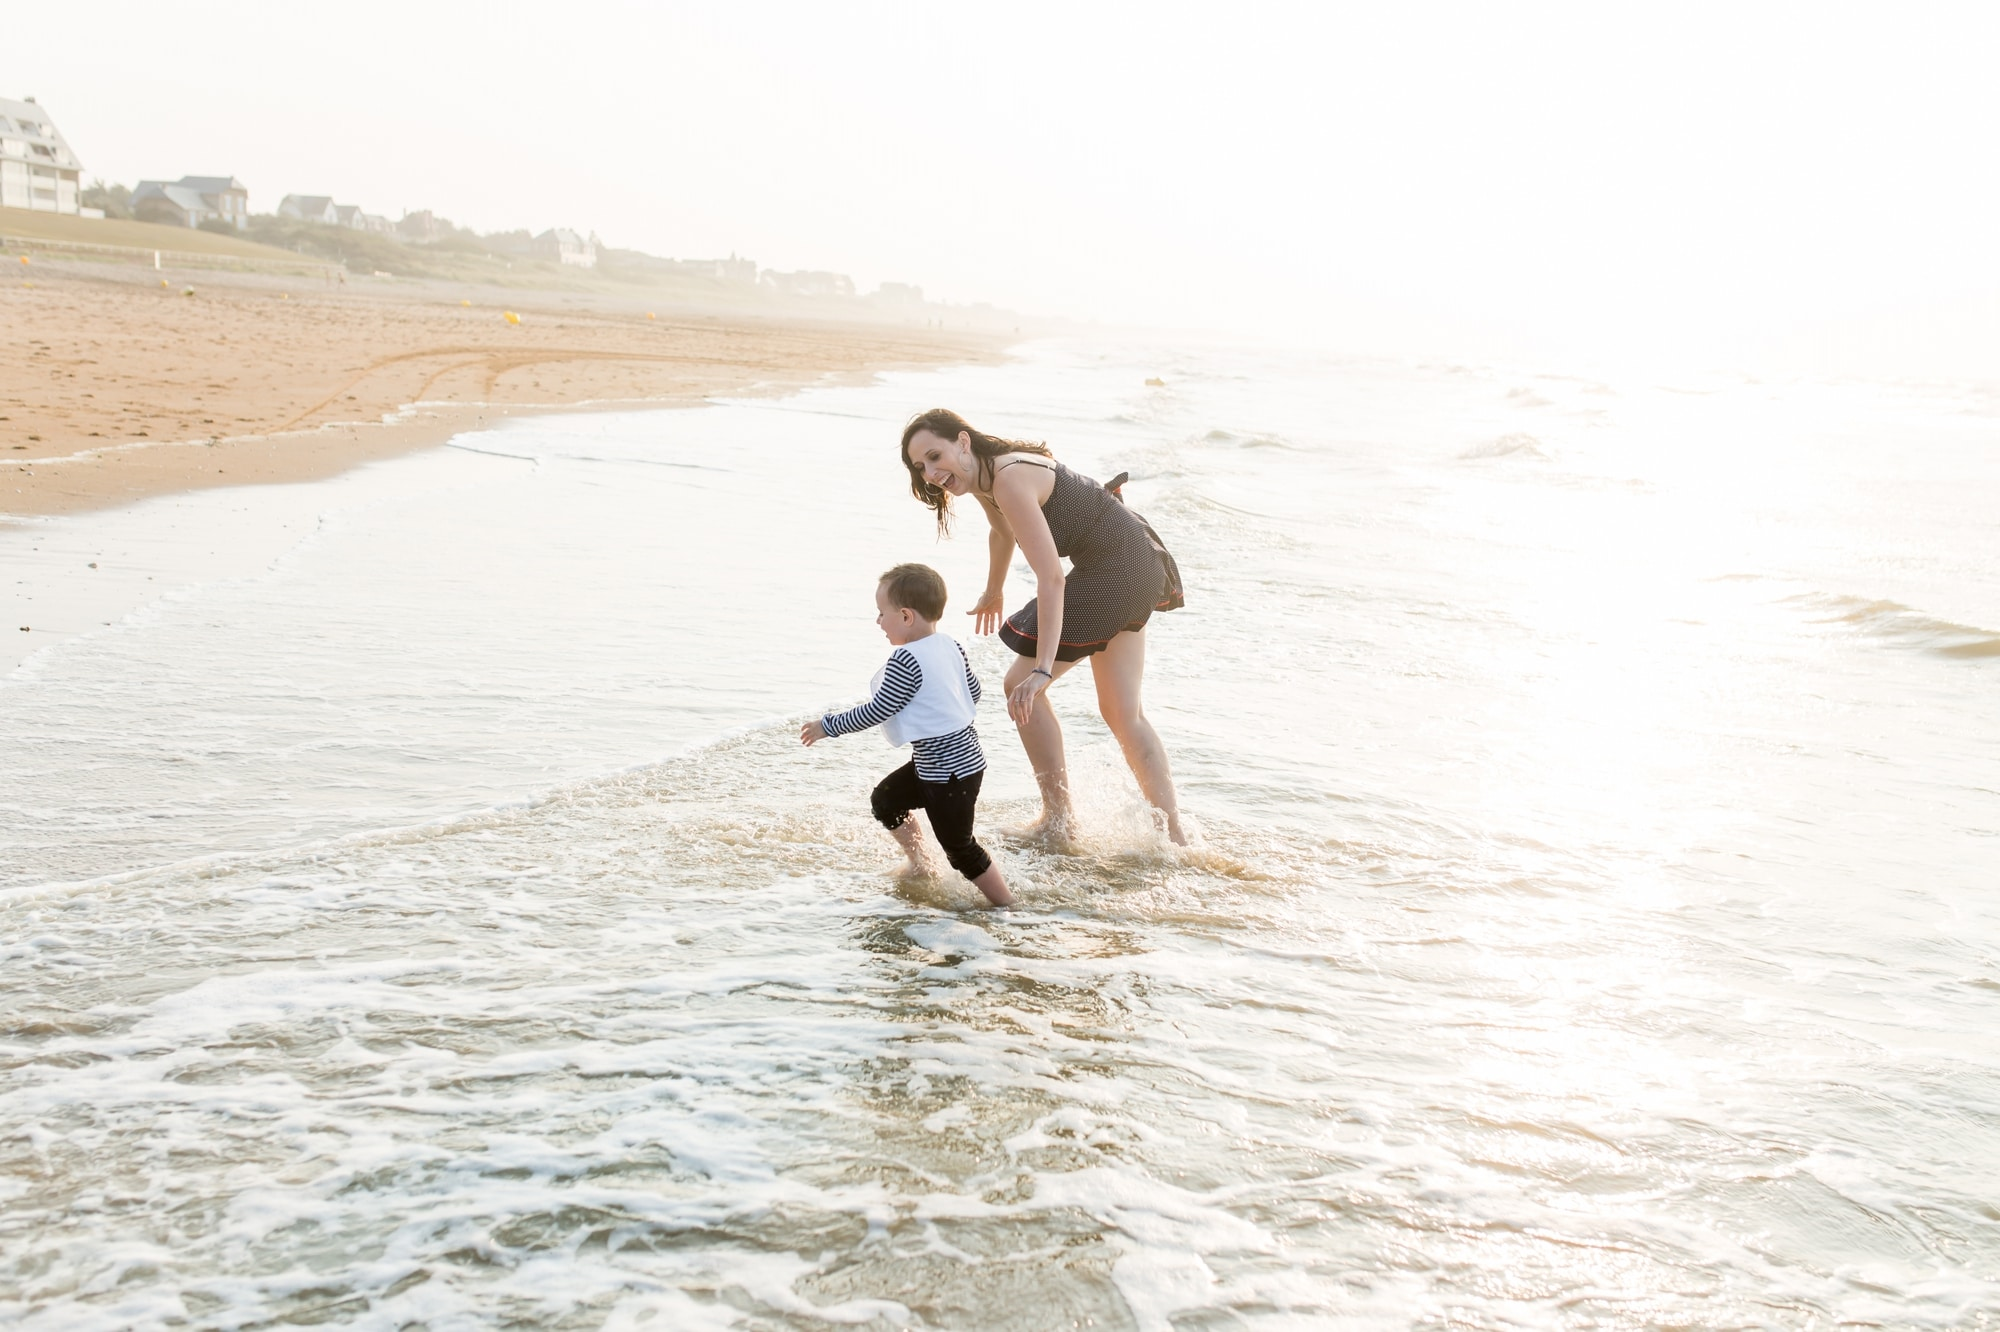 séance famille cabourg basse normandie photographe shooting lifestyle-21